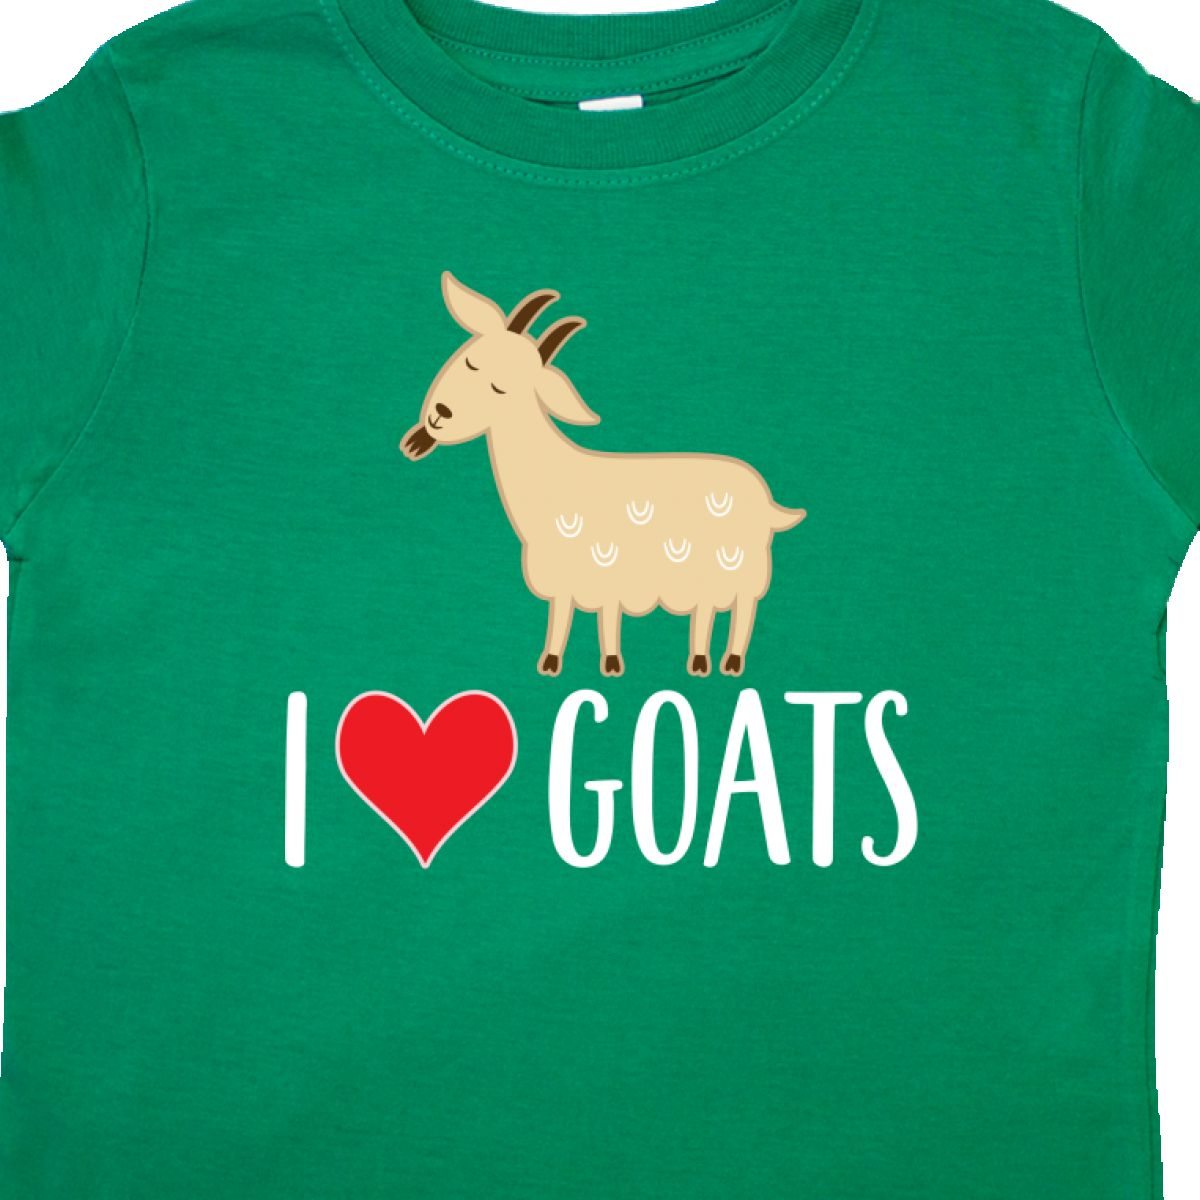 Inktastic-Goat-Cute-I-Love-Goats-Farm-Animal-Toddler-T-Shirt-Lover-Farmer-Gift thumbnail 6